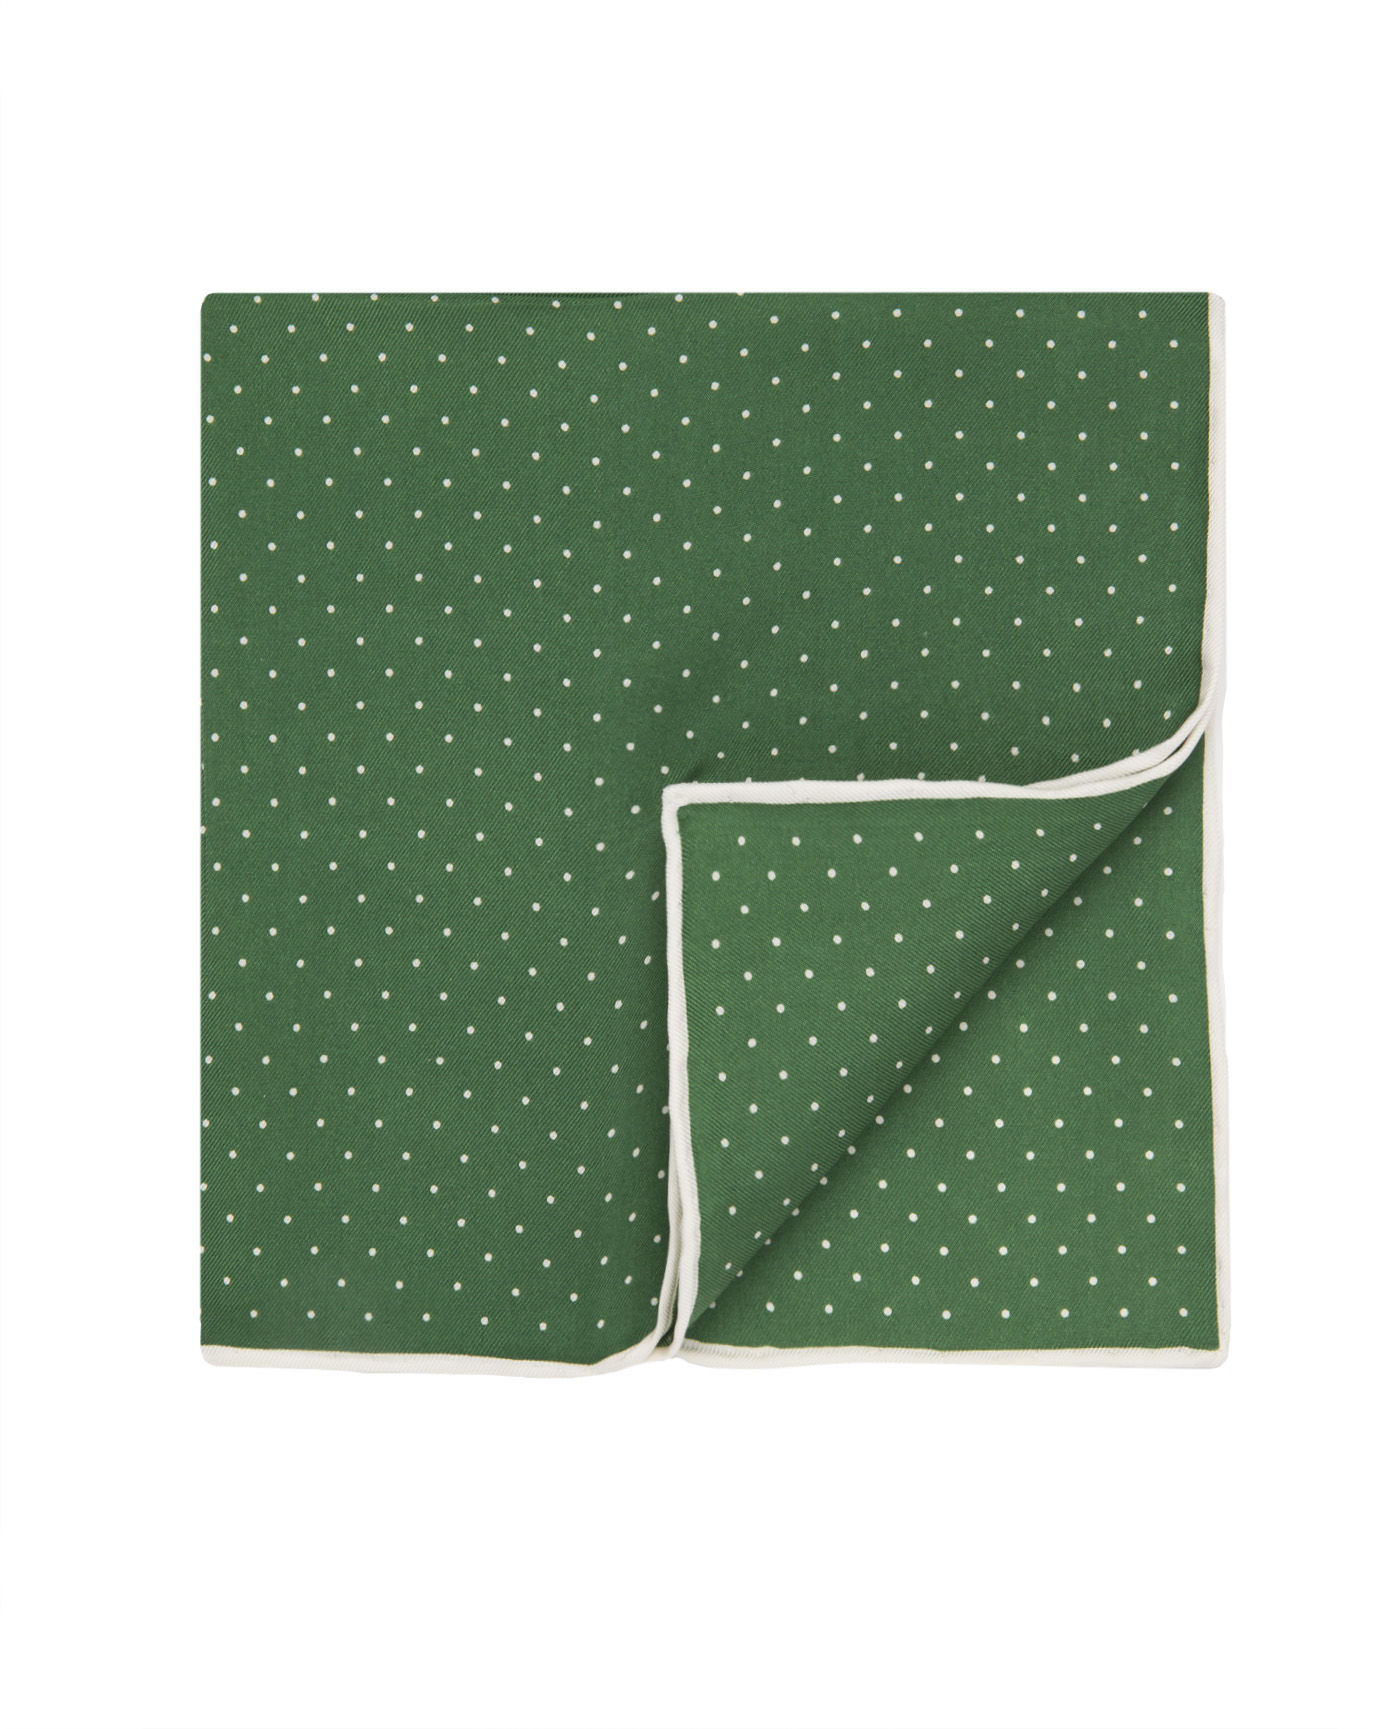 T.M.Lewin Green Spot Silk Pocket Square